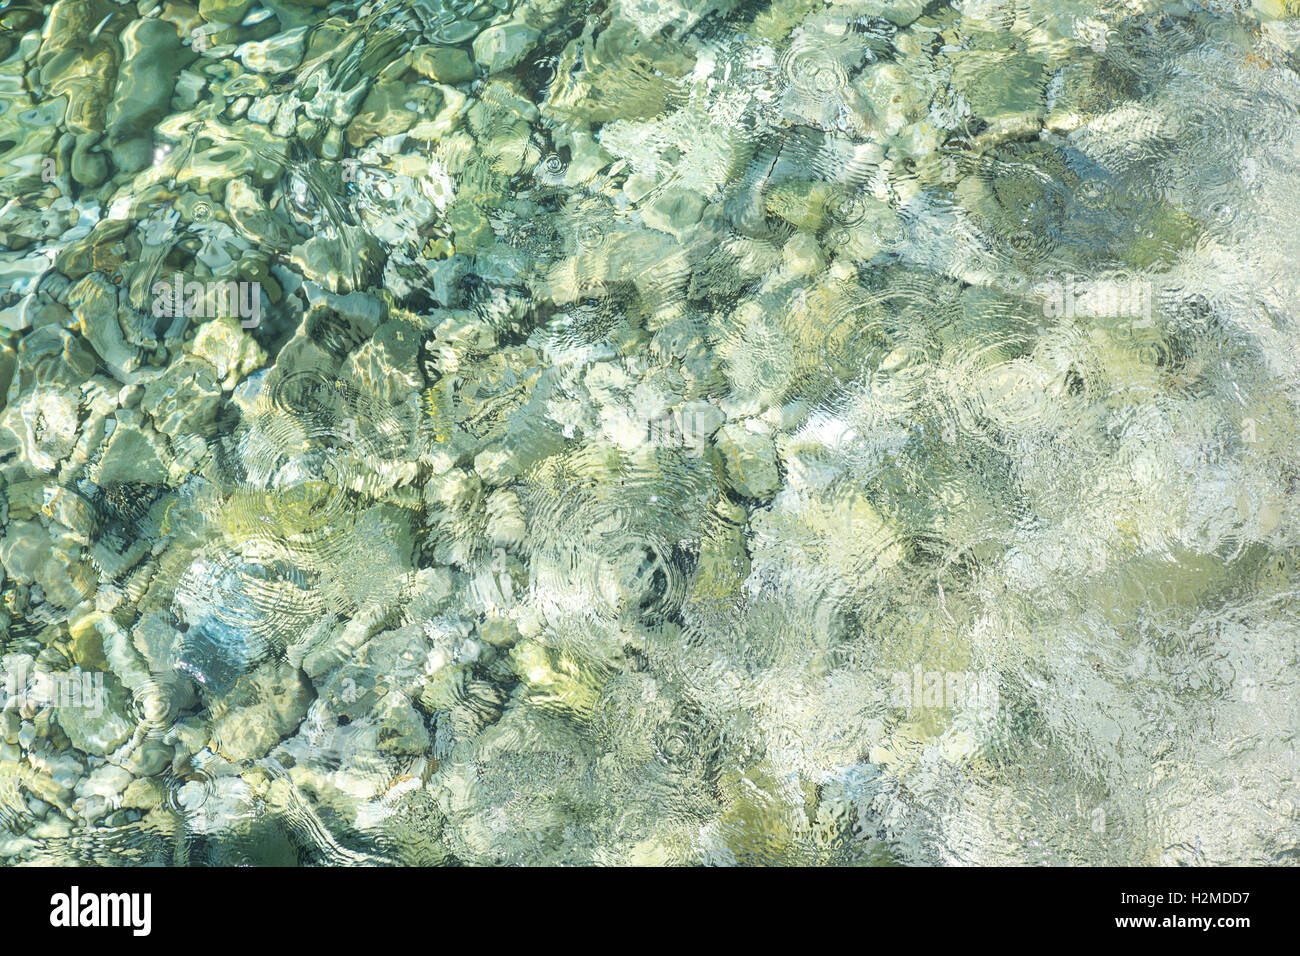 Crystal clear water. - Stock Image